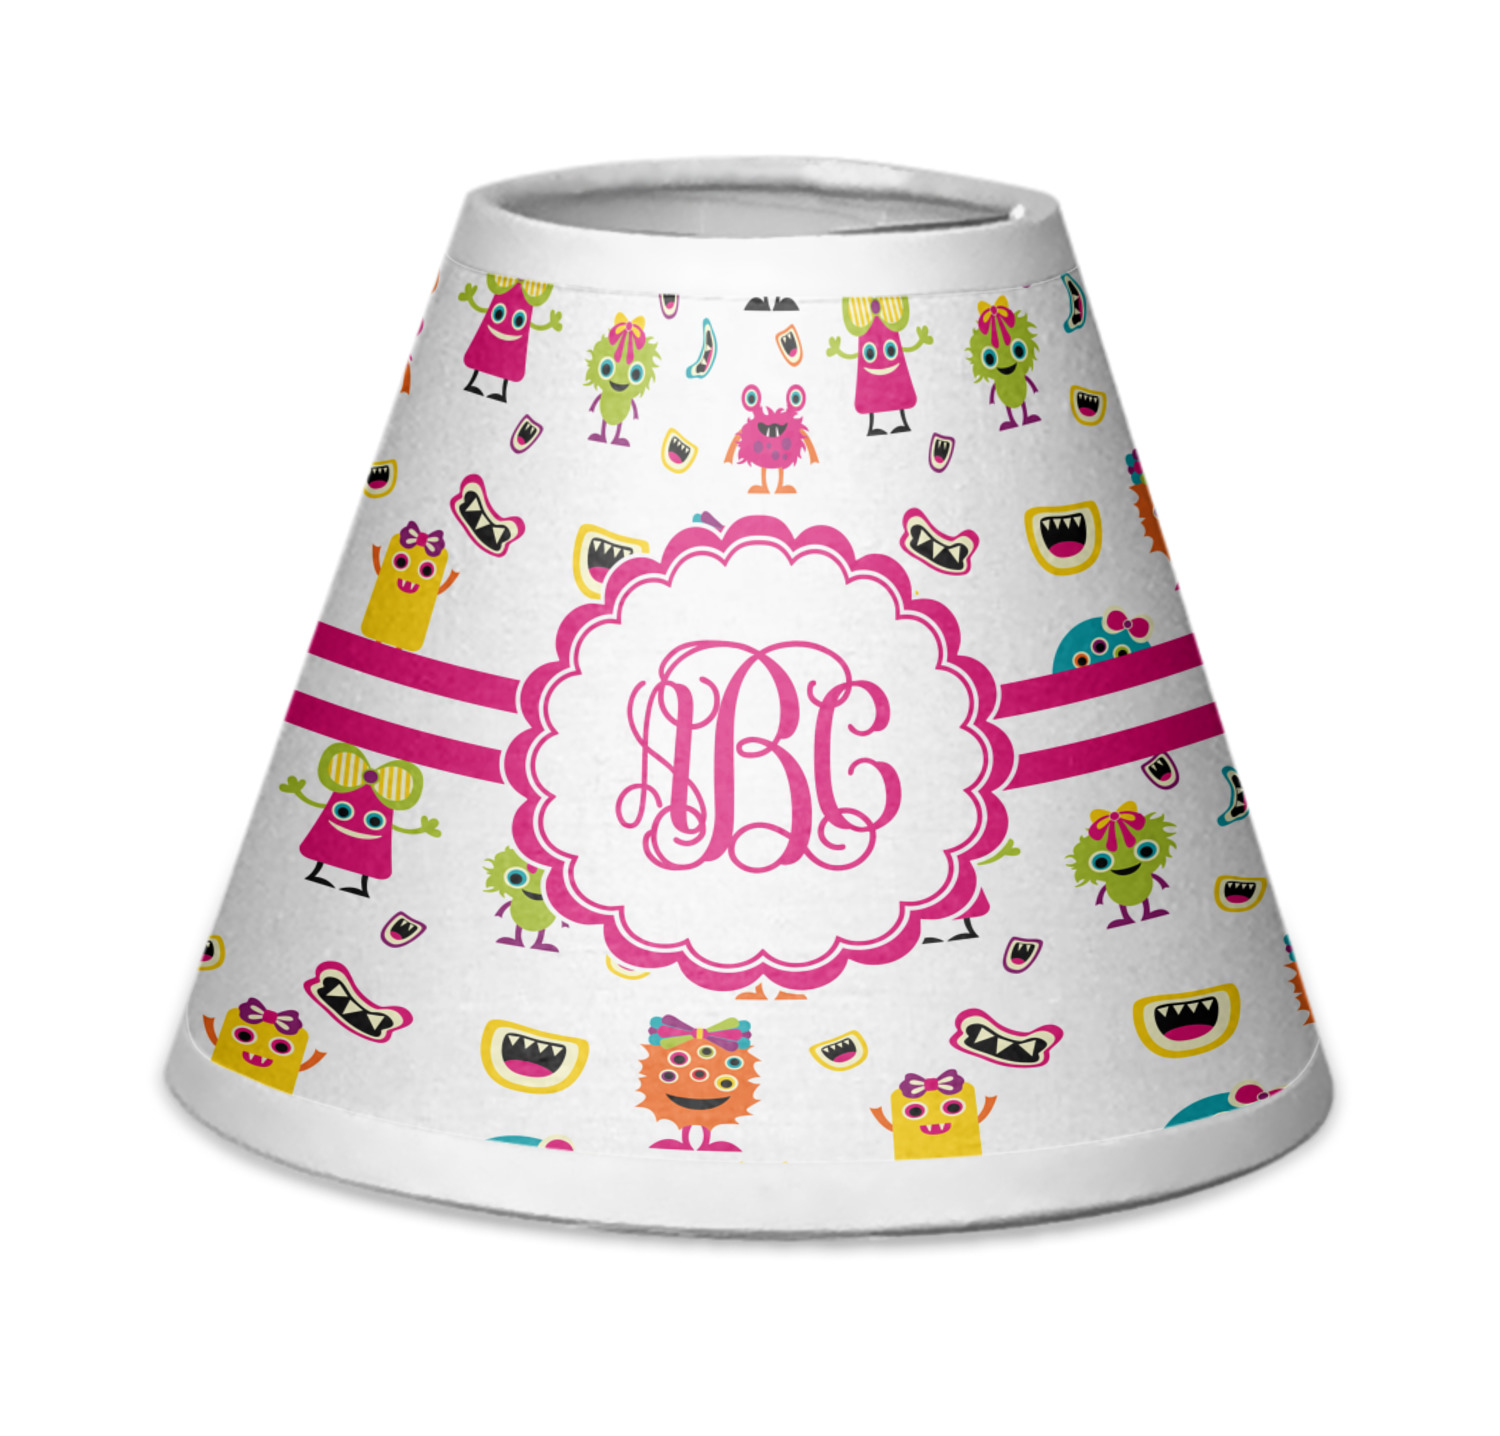 Girly Lamps For Bedroom: Girly Monsters Chandelier Lamp Shade (Personalized